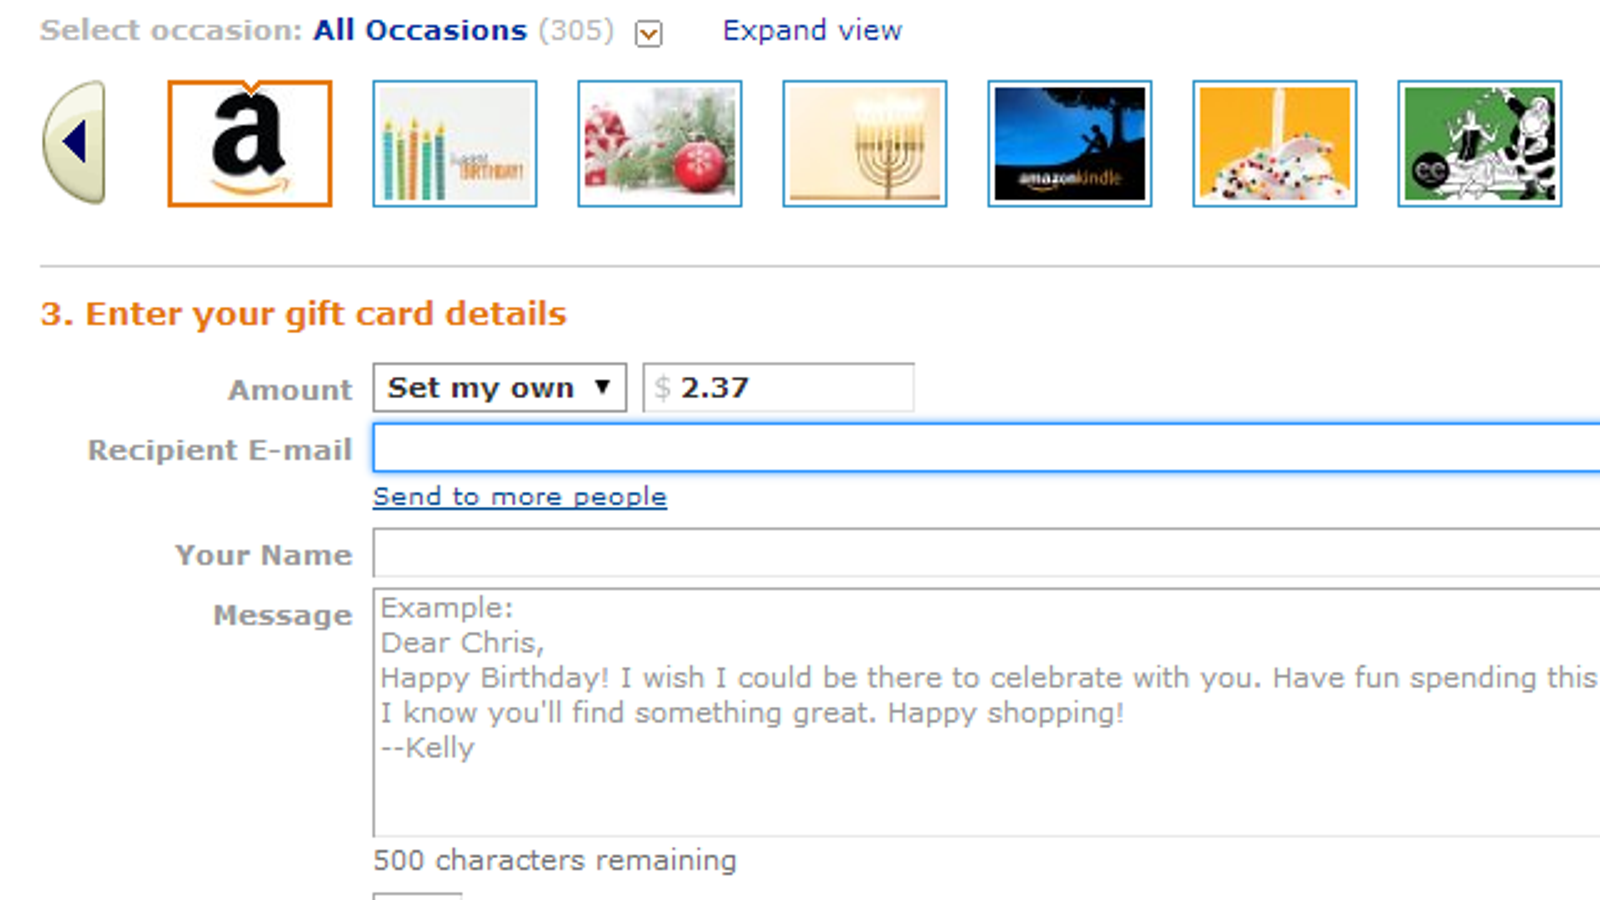 Buy Amazon Gift Cards To Use Up That Prepaid Debit Card Balance